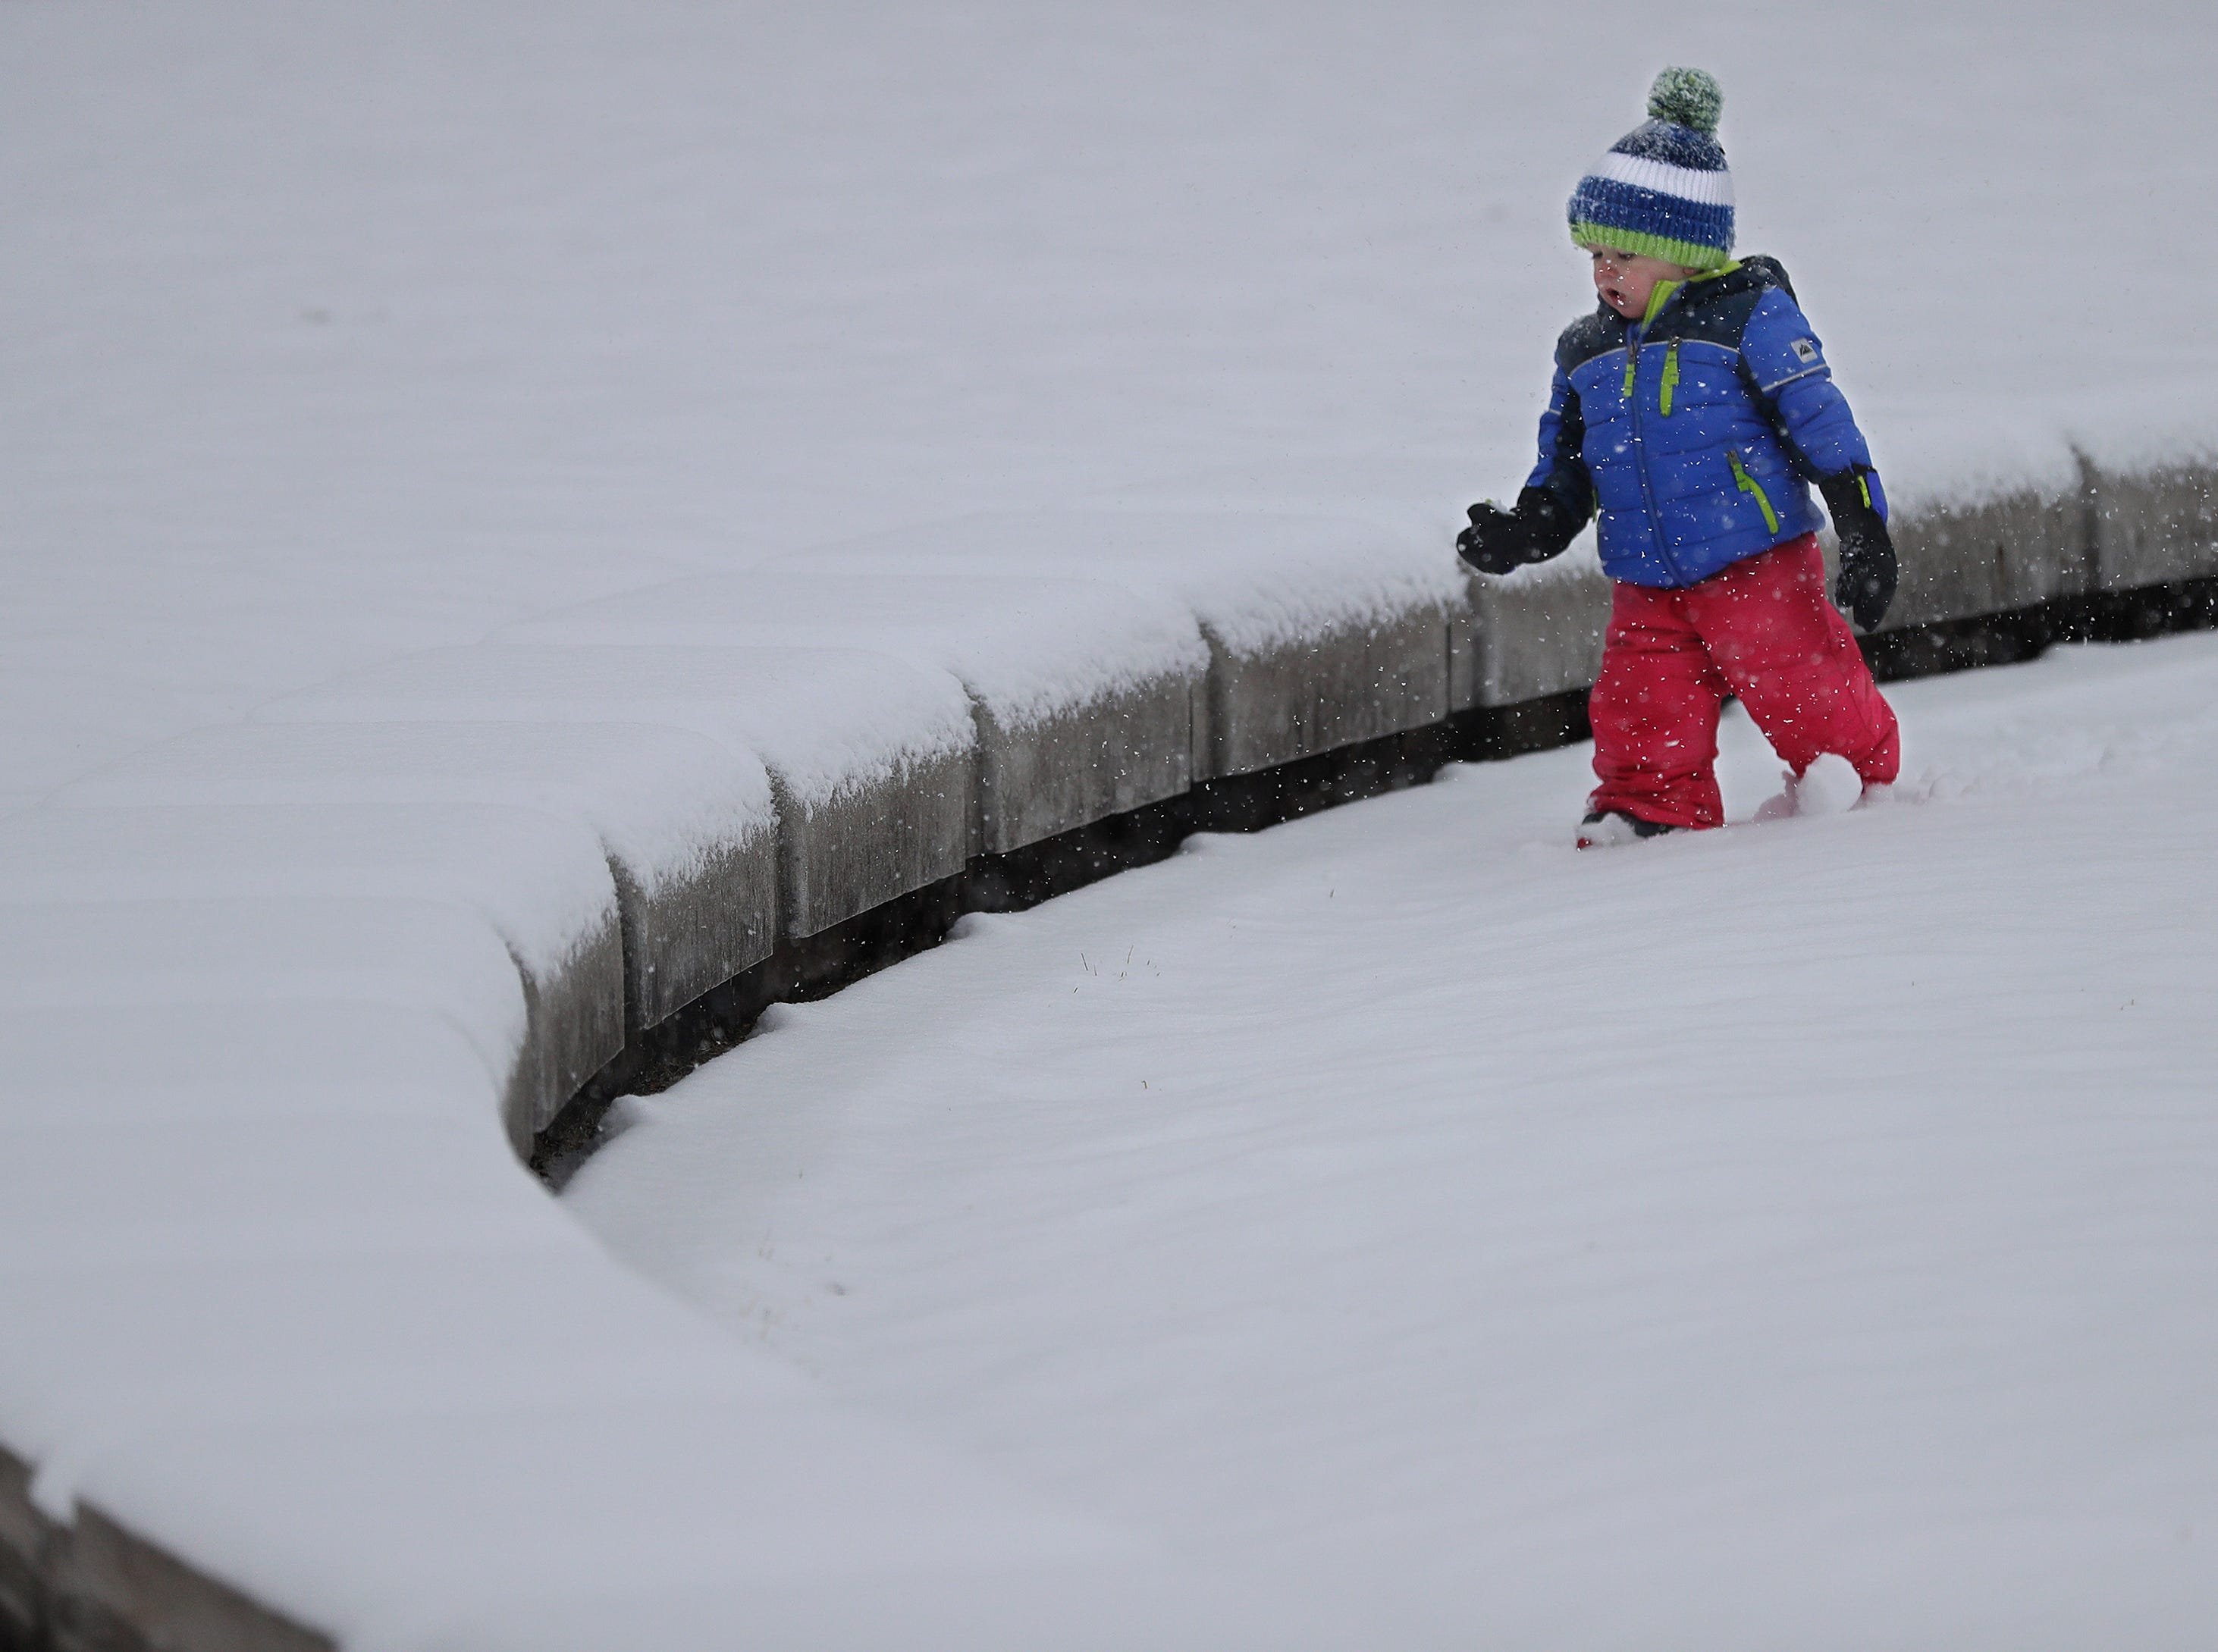 Everette Mott, 1, of Neenah, plays in the snow at Shattuck Park during a snow storm Monday, December 31, 2018, in Neenah, Wis. Everette was with his family.Dan Powers/USA TODAY NETWORK-Wisconsin